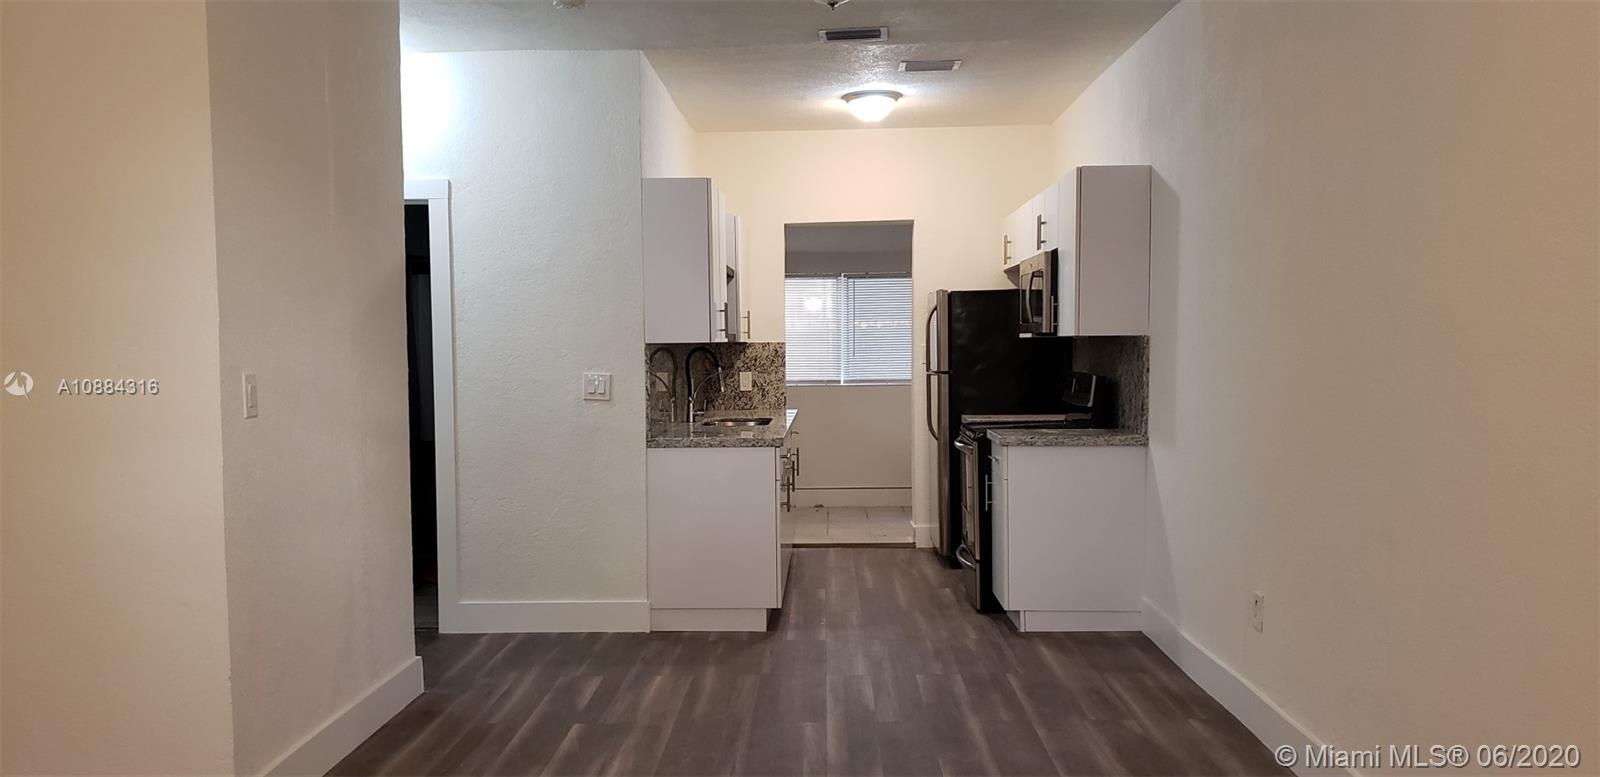 2600 32nd ave- miami-fl-33133-a10884316-Pic05